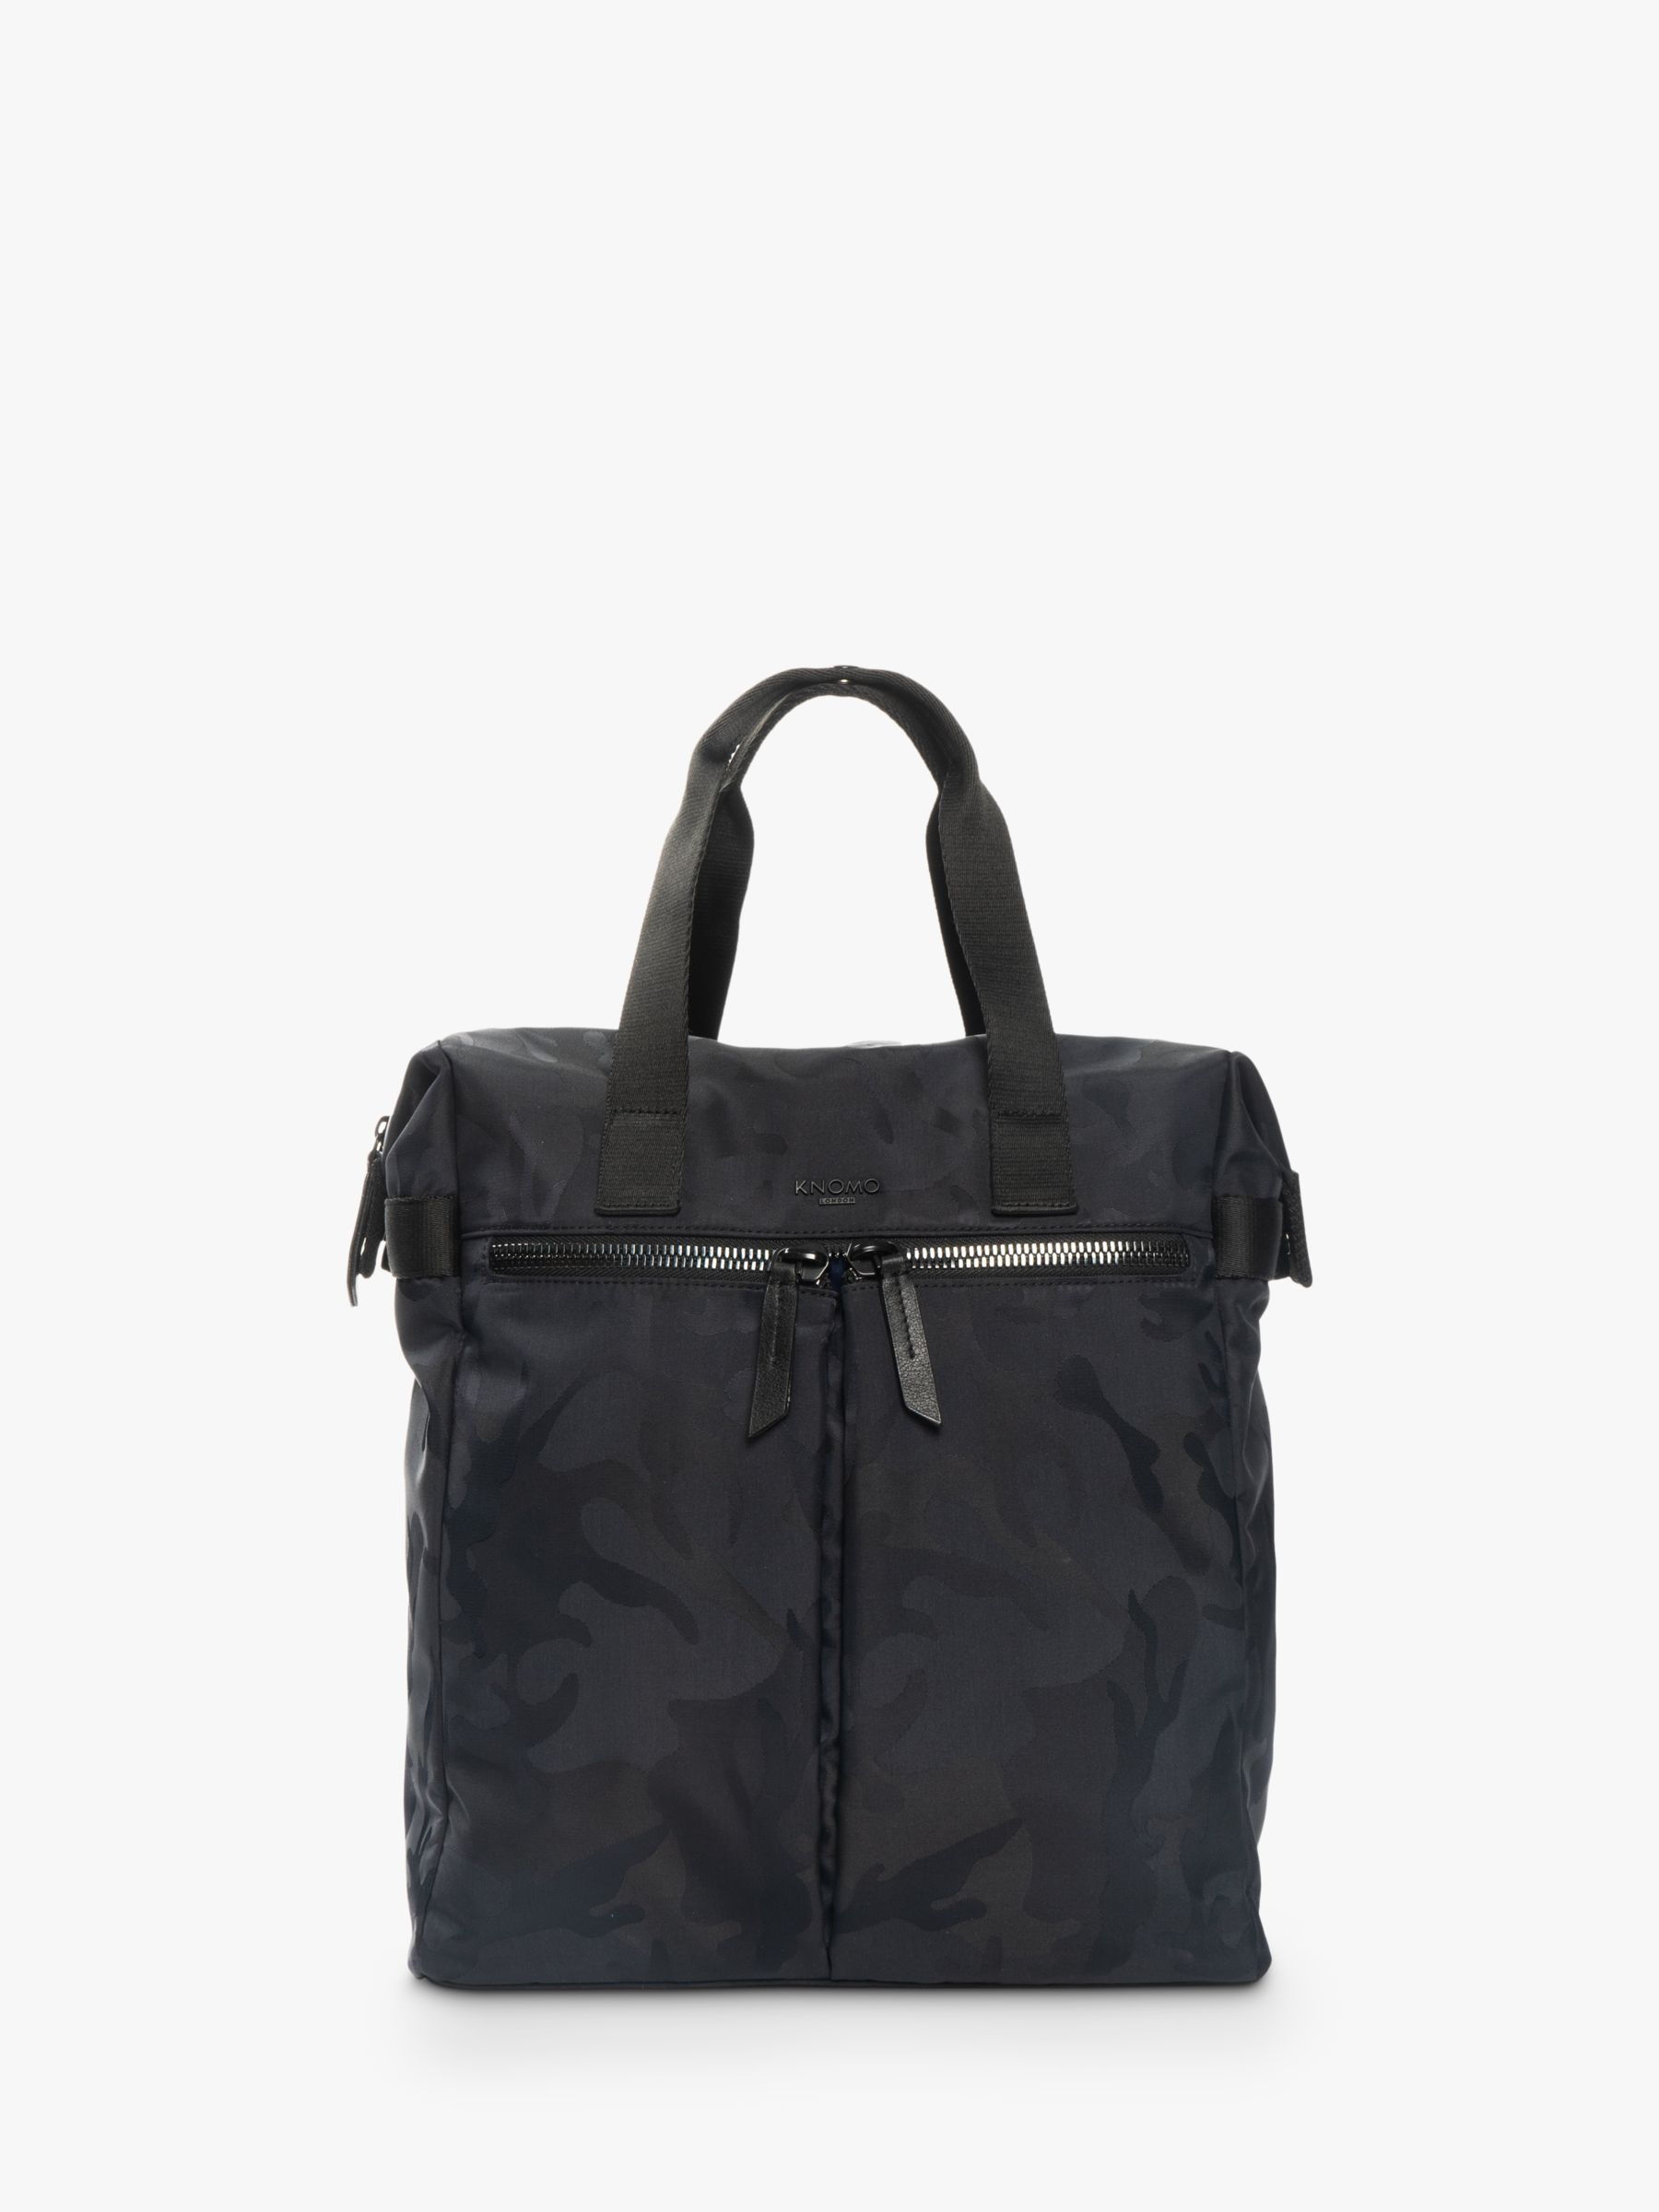 Knomo KNOMO Santiago Tote Backpack for Laptops up to 14, Black Camouflage